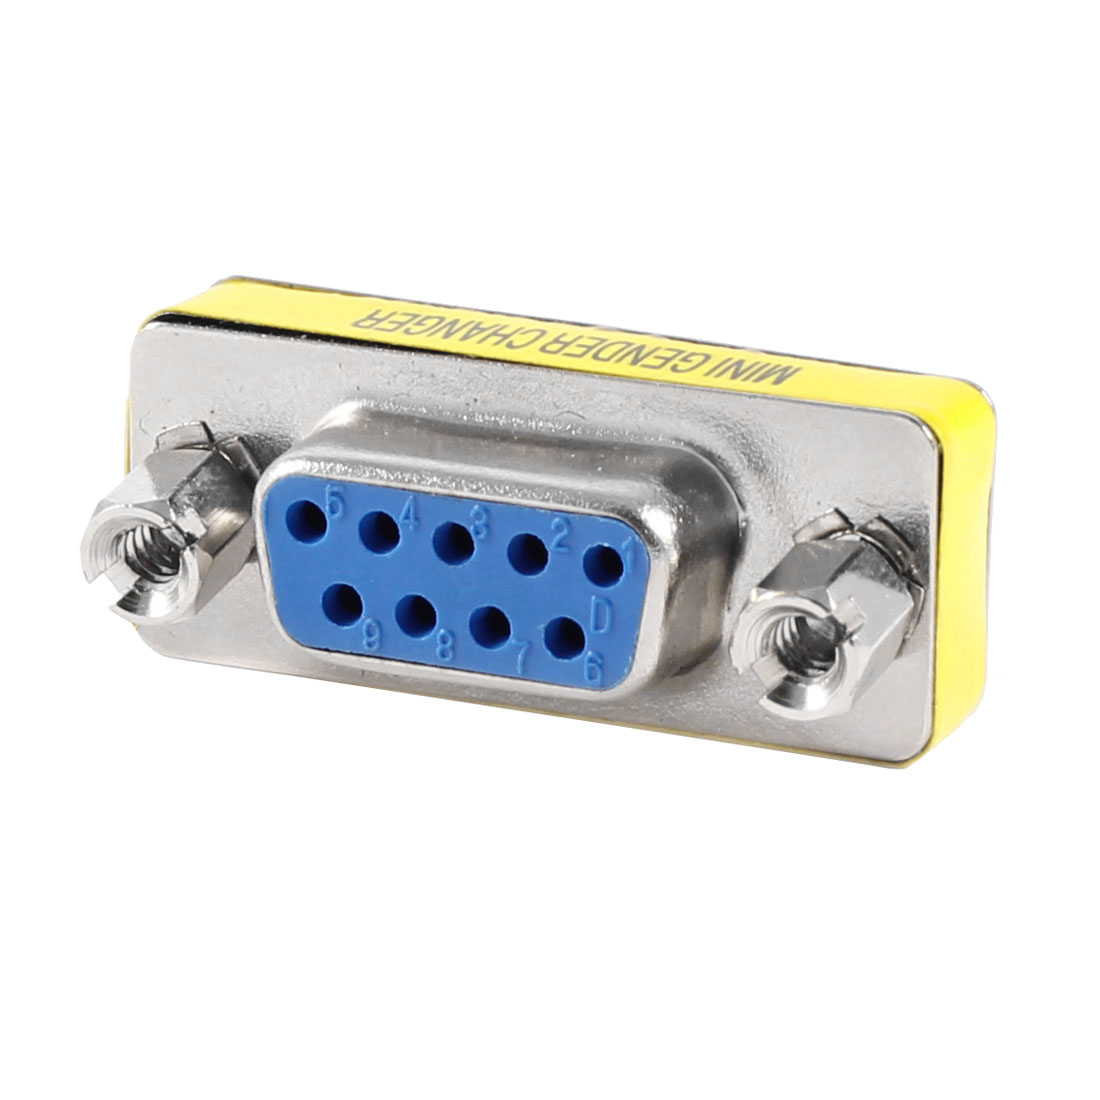 RS-232 DB9 Male to Female Mini Gender Charger Adapter Connector